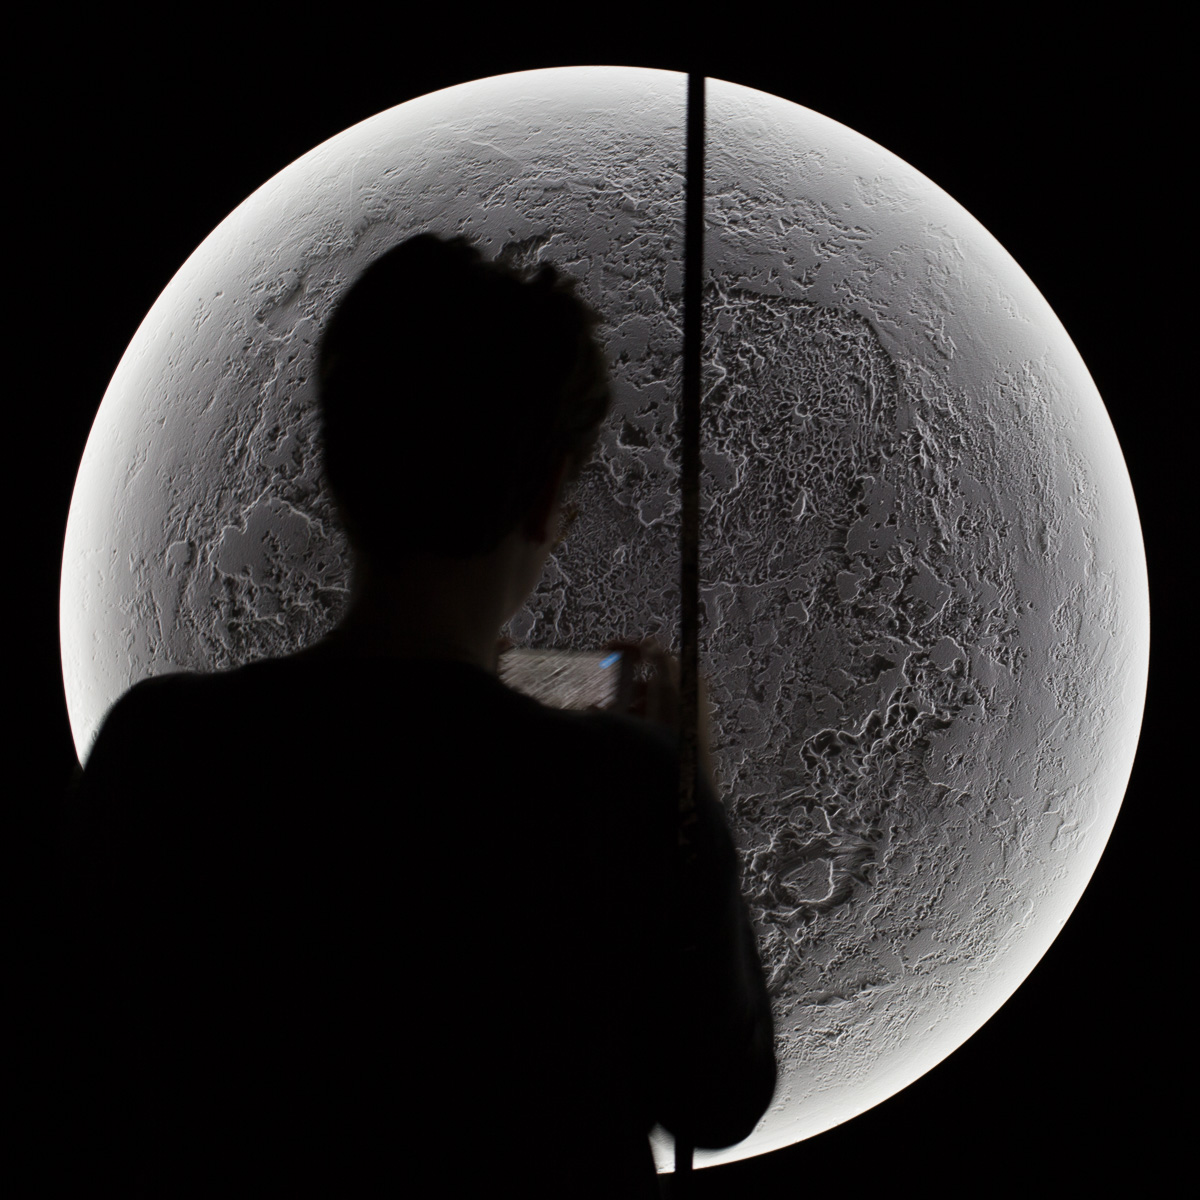 A detail from Illuminator XVII, a modern art installation which resembles the surface of the moon. A silhouetted figure of a lady taking a photo partially obscures the view of the piece.